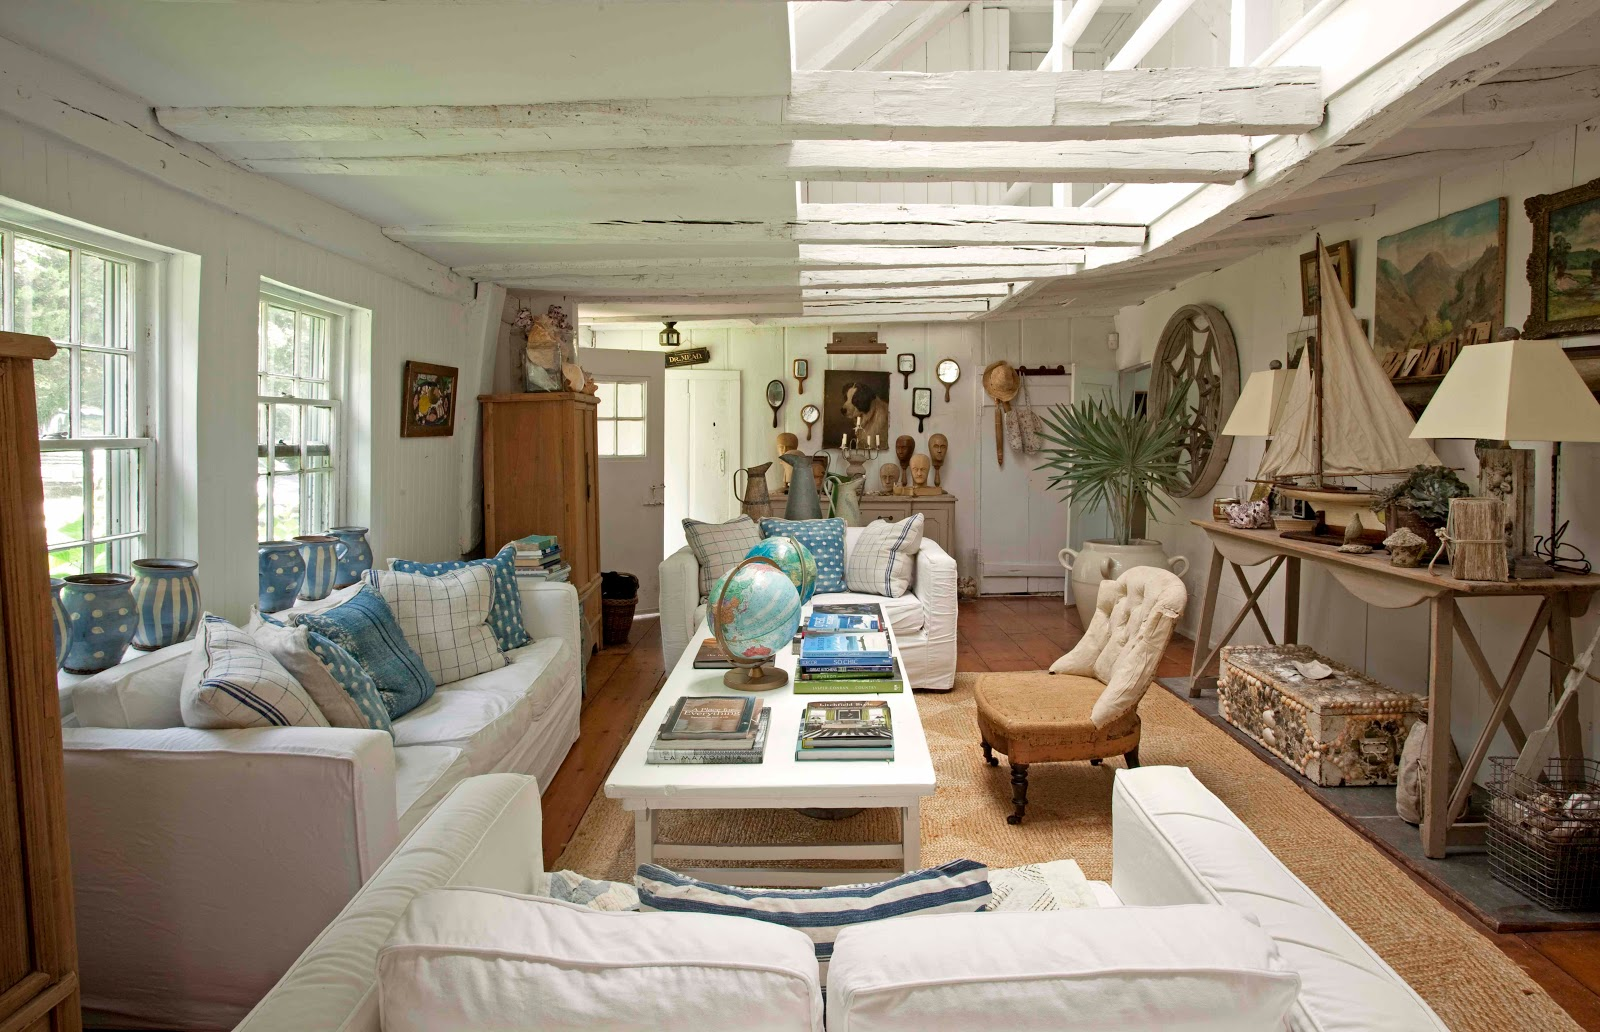 Stylebeat seaside charm rooms that inspire by the sea for Beach house decorating ideas photos